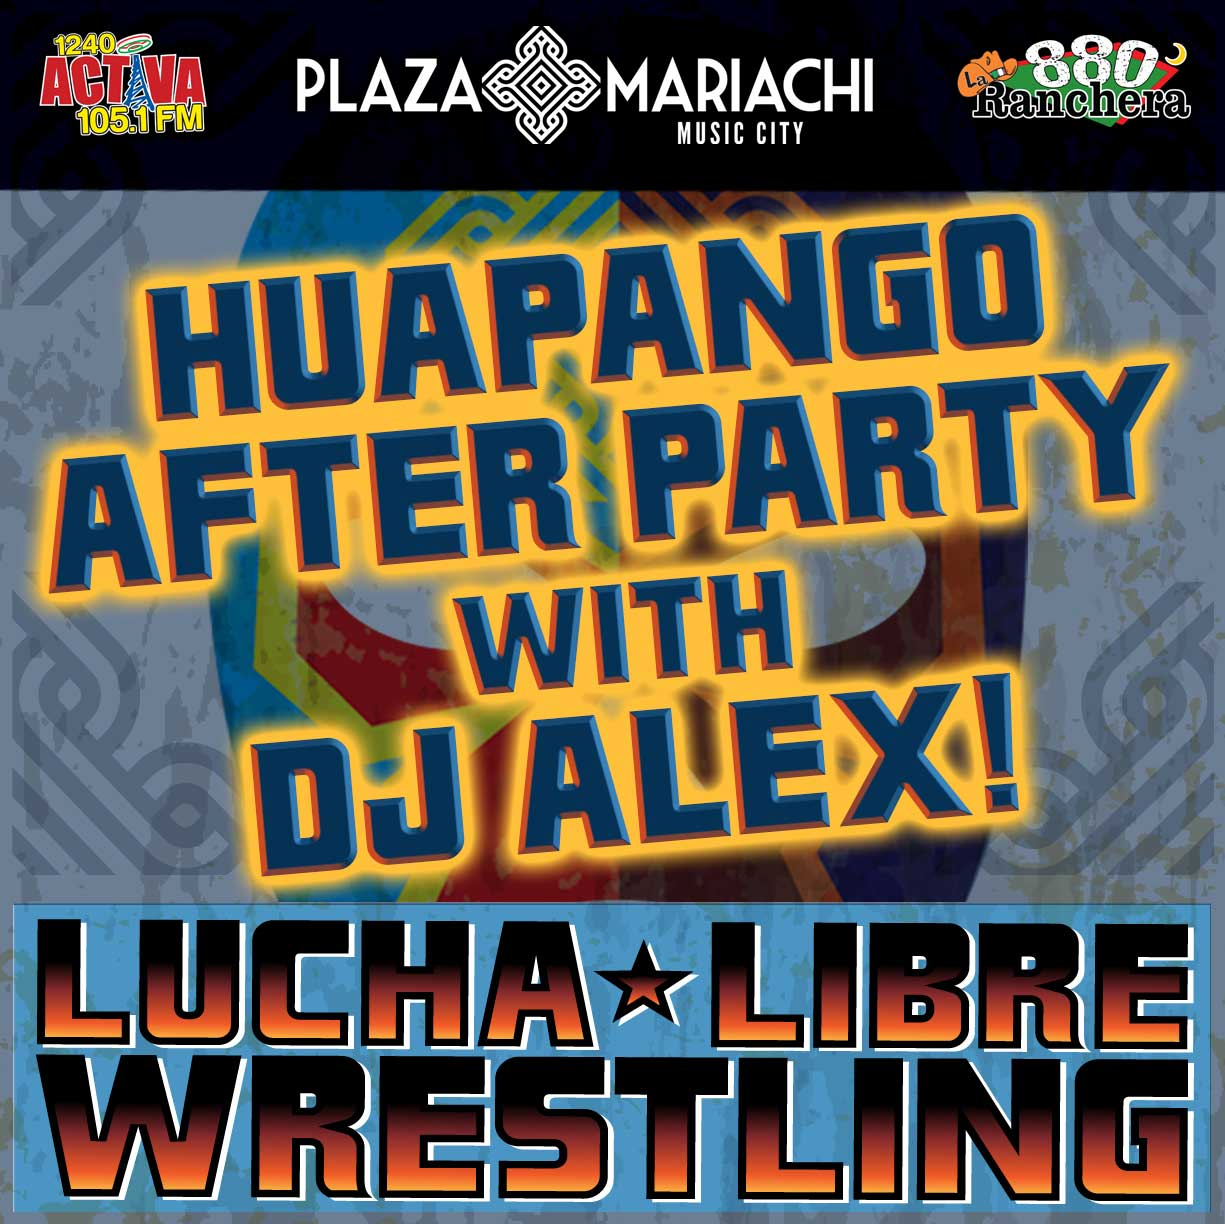 Huapango After Party with DJ Alex